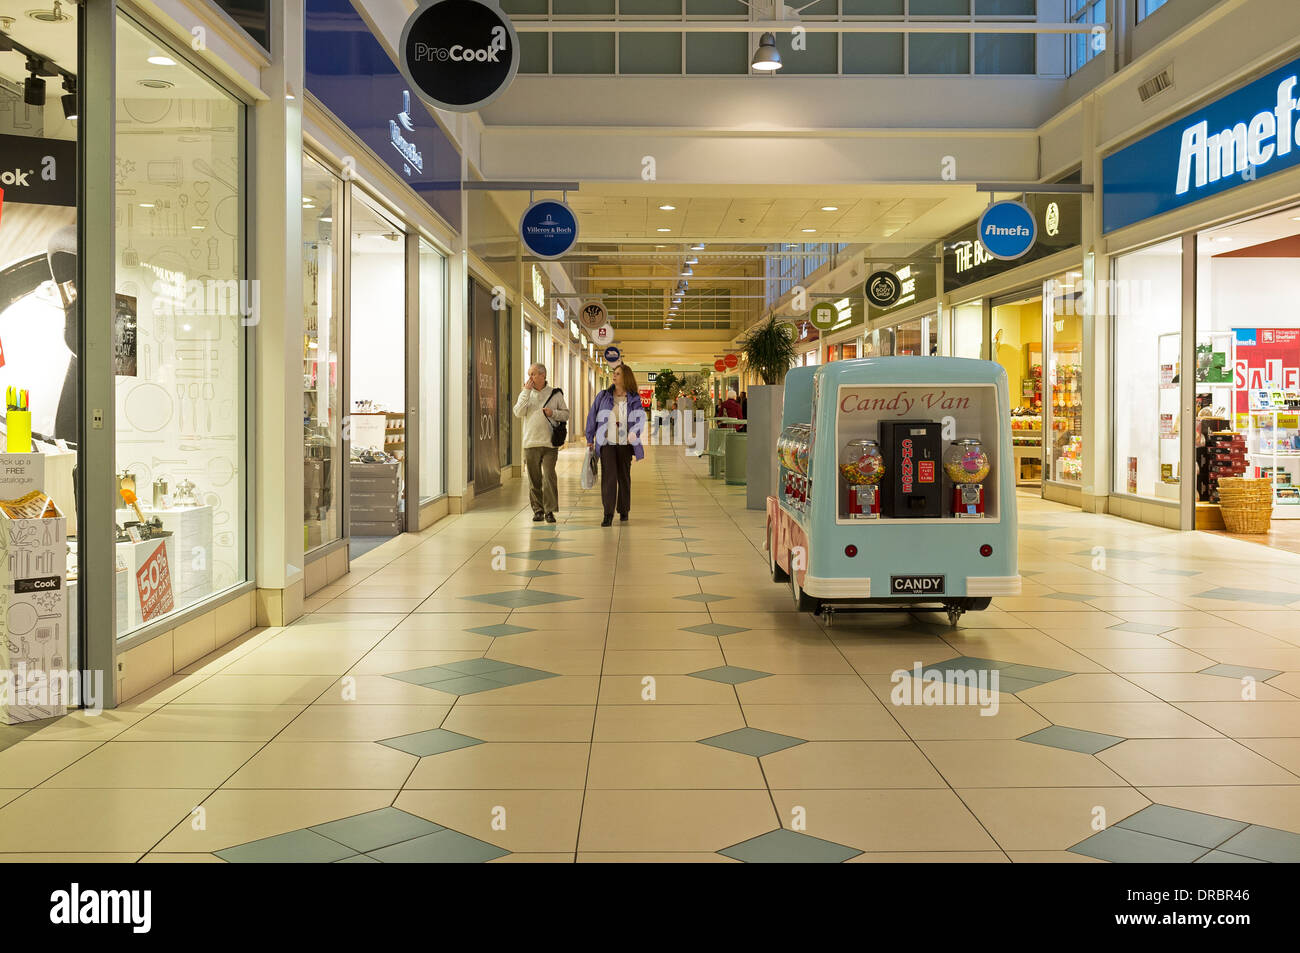 4ad5632c8fc Interior walkway between shops at the Livingston Designer shopping mall,  near Edinburgh, Scotland,